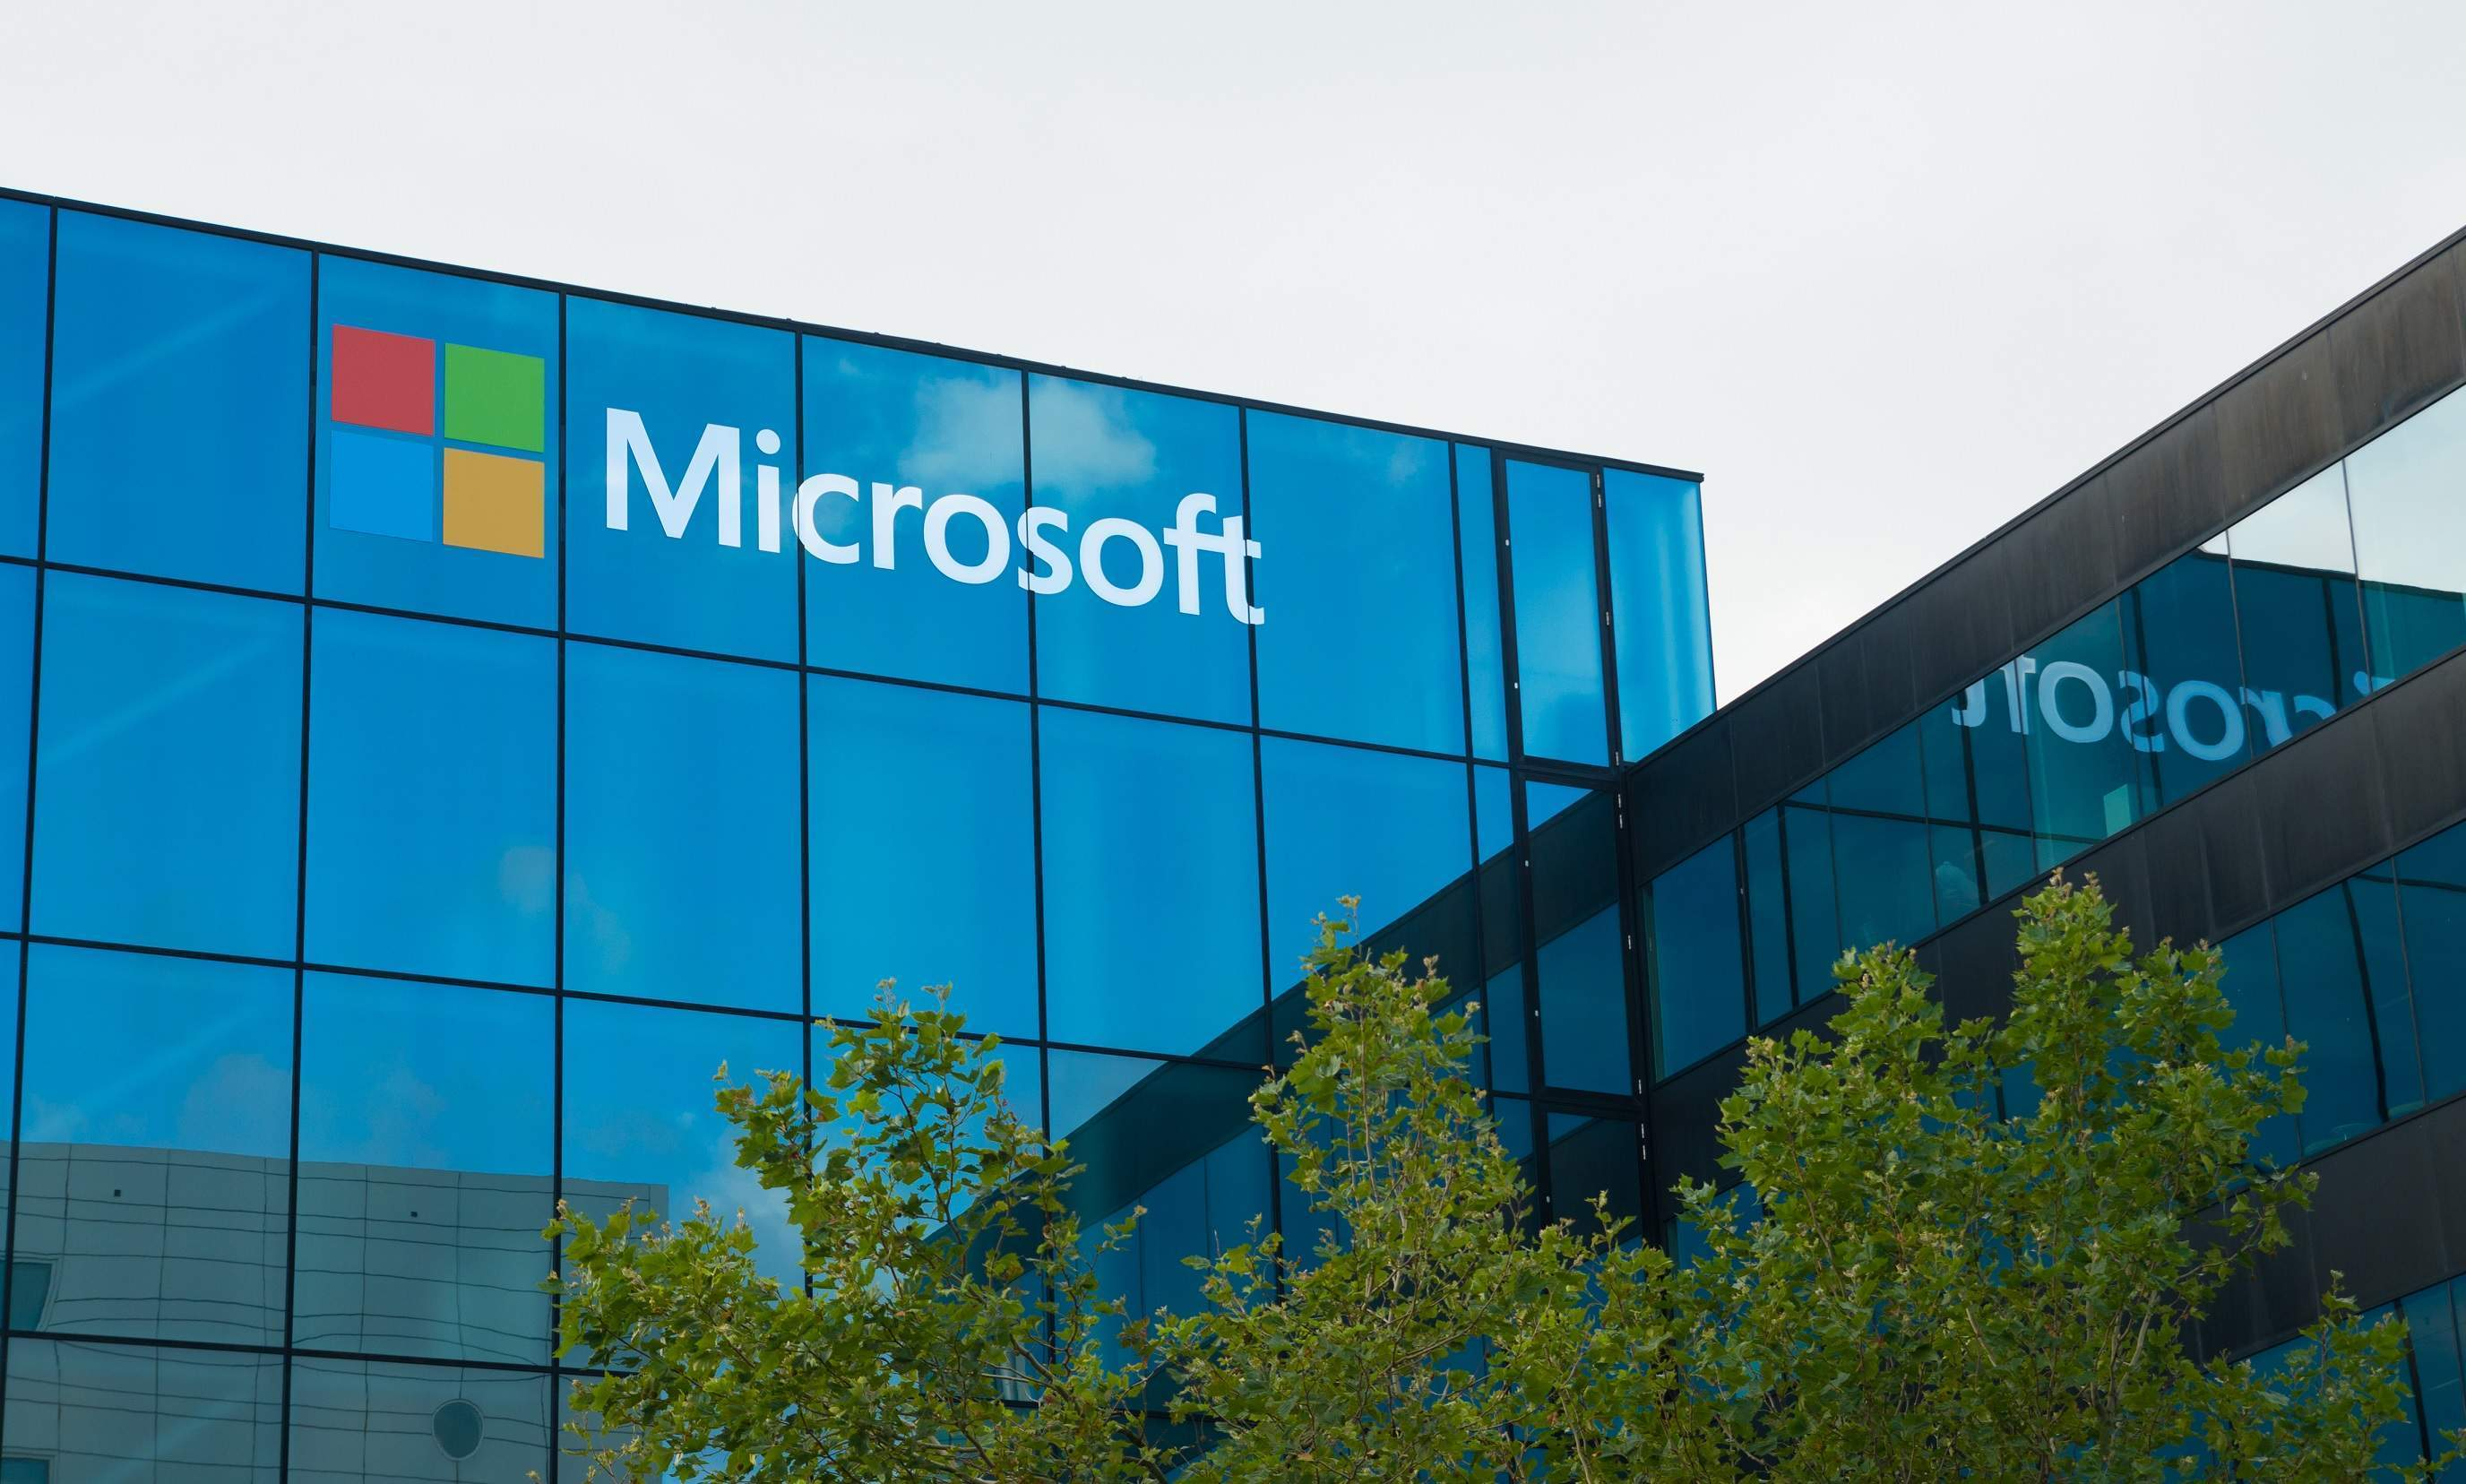 Microsoft results: Here's what to look out for today